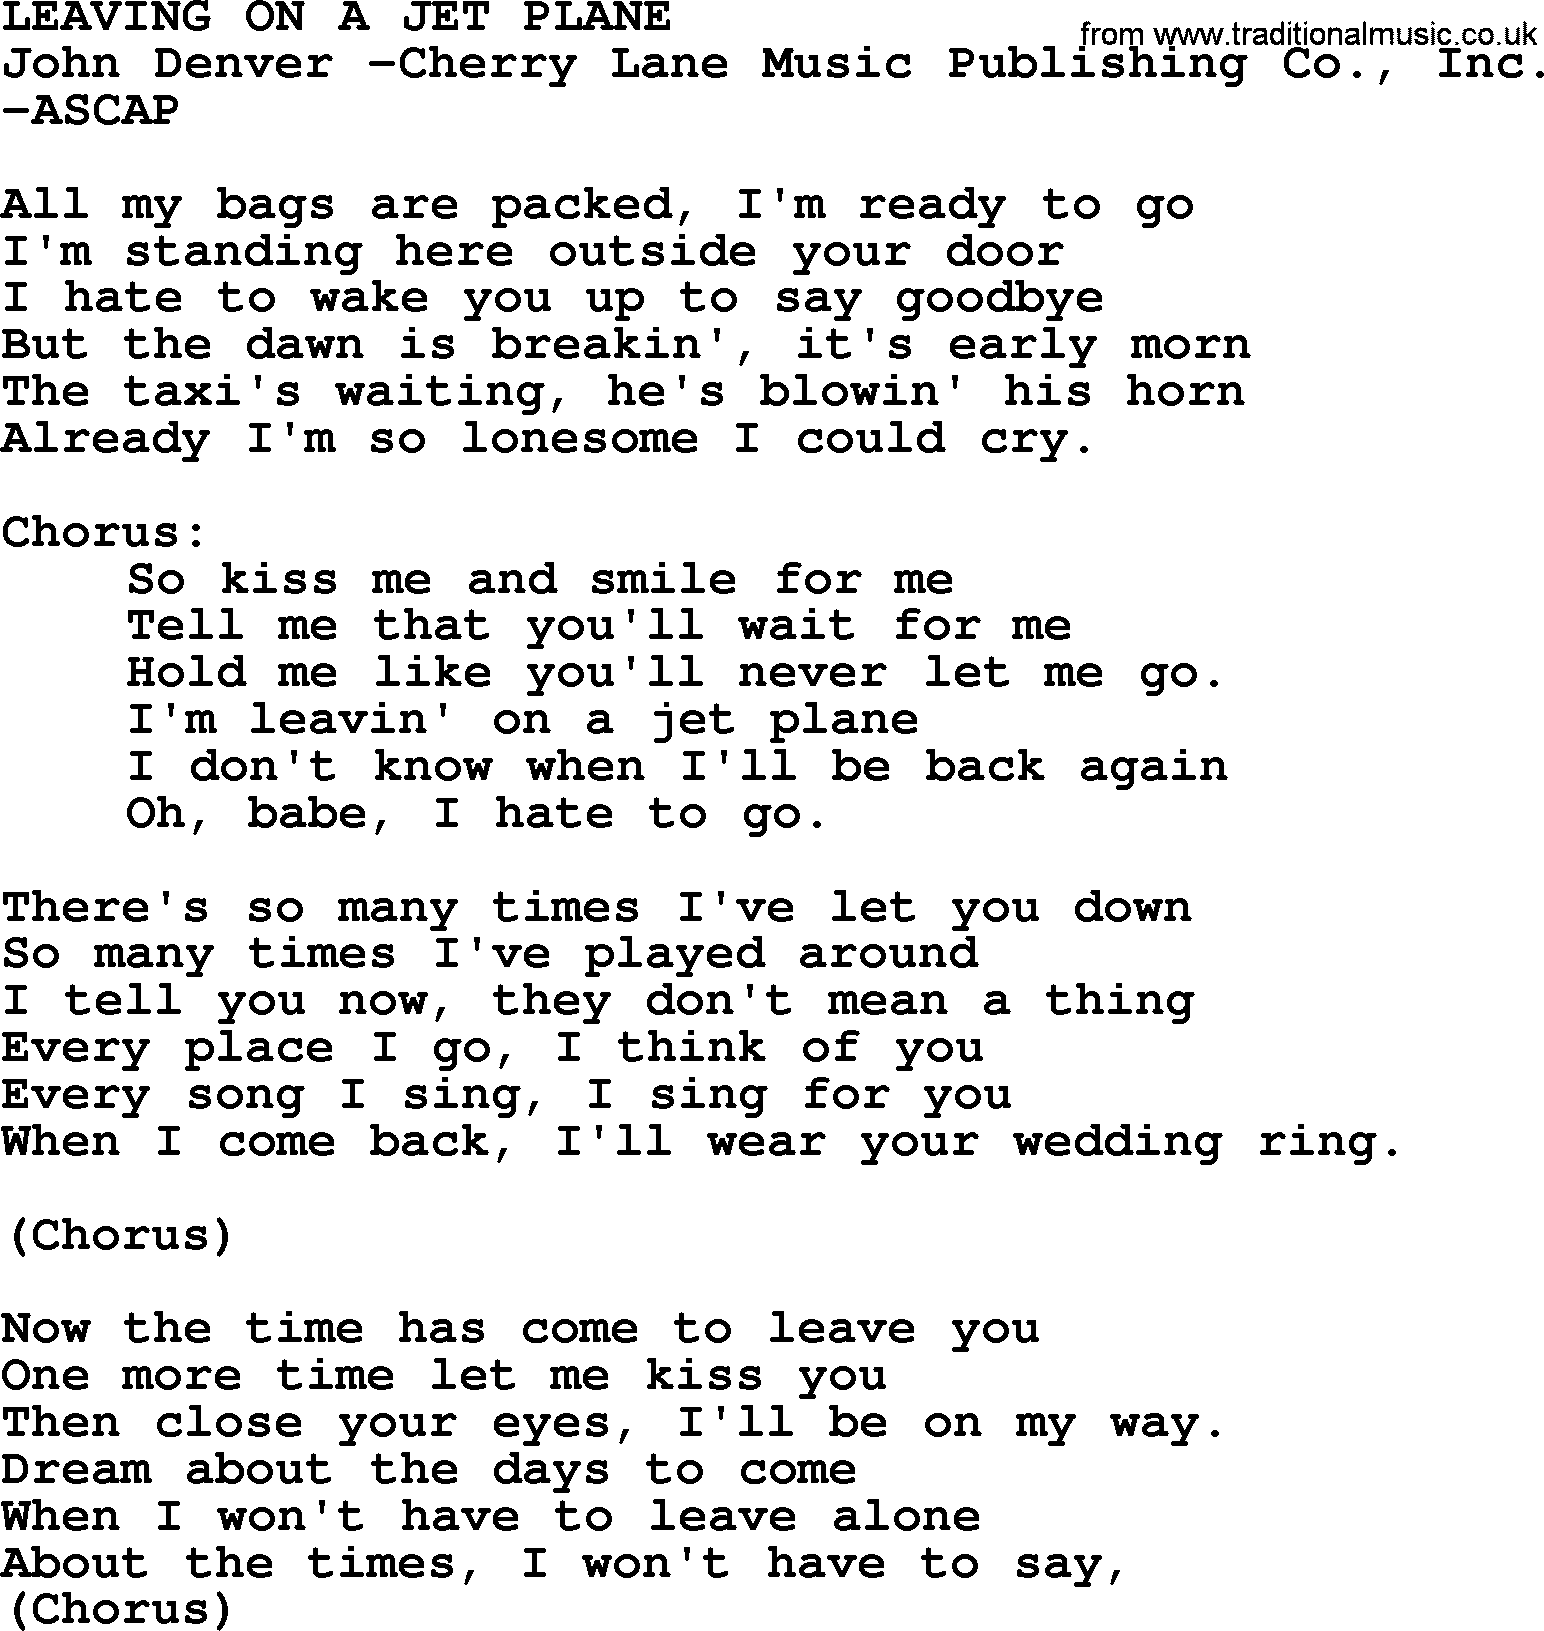 Peter paul and mary song leaving on a jet plane lyrics peter paul and mary song leaving on a jet plane lyrics hexwebz Gallery